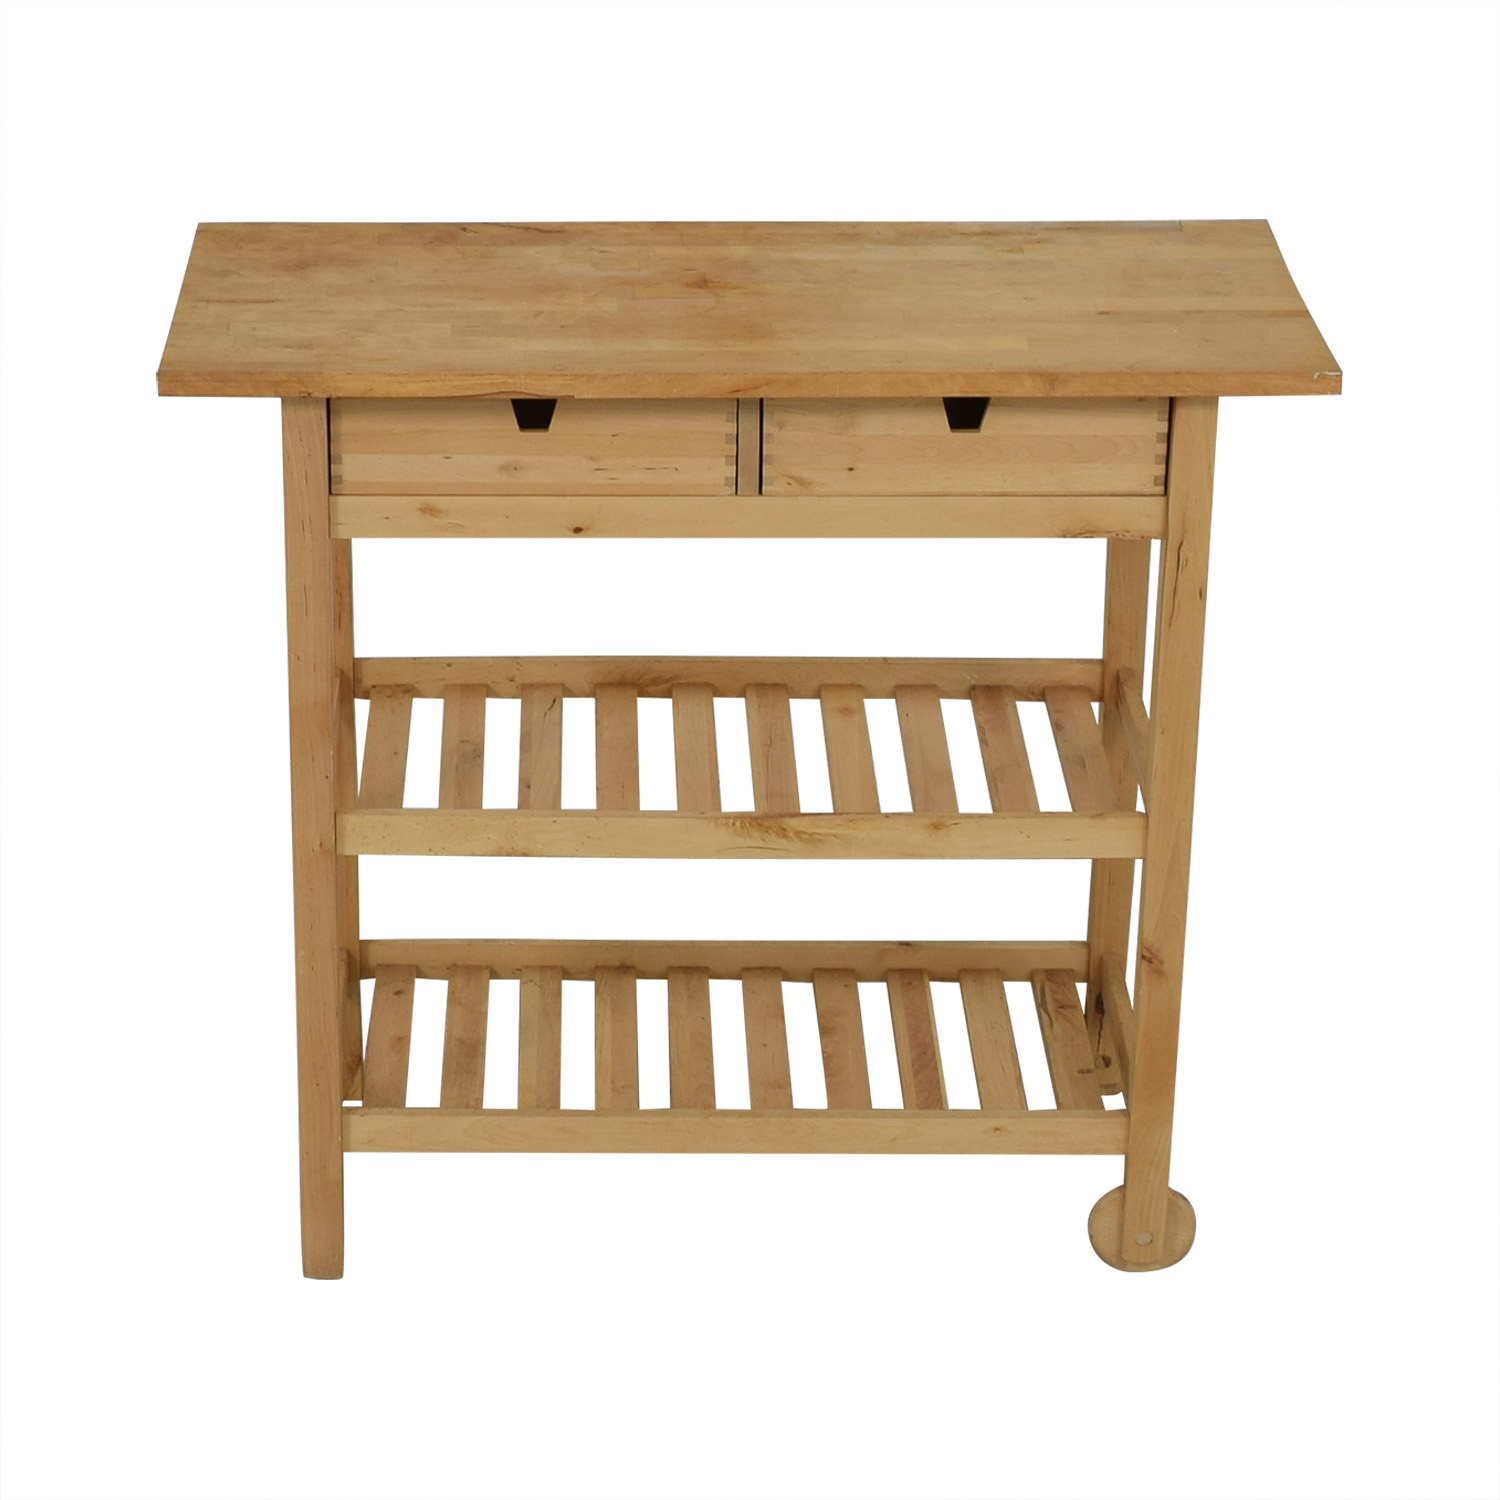 Two-Drawer Natural Wood Cart dimensions